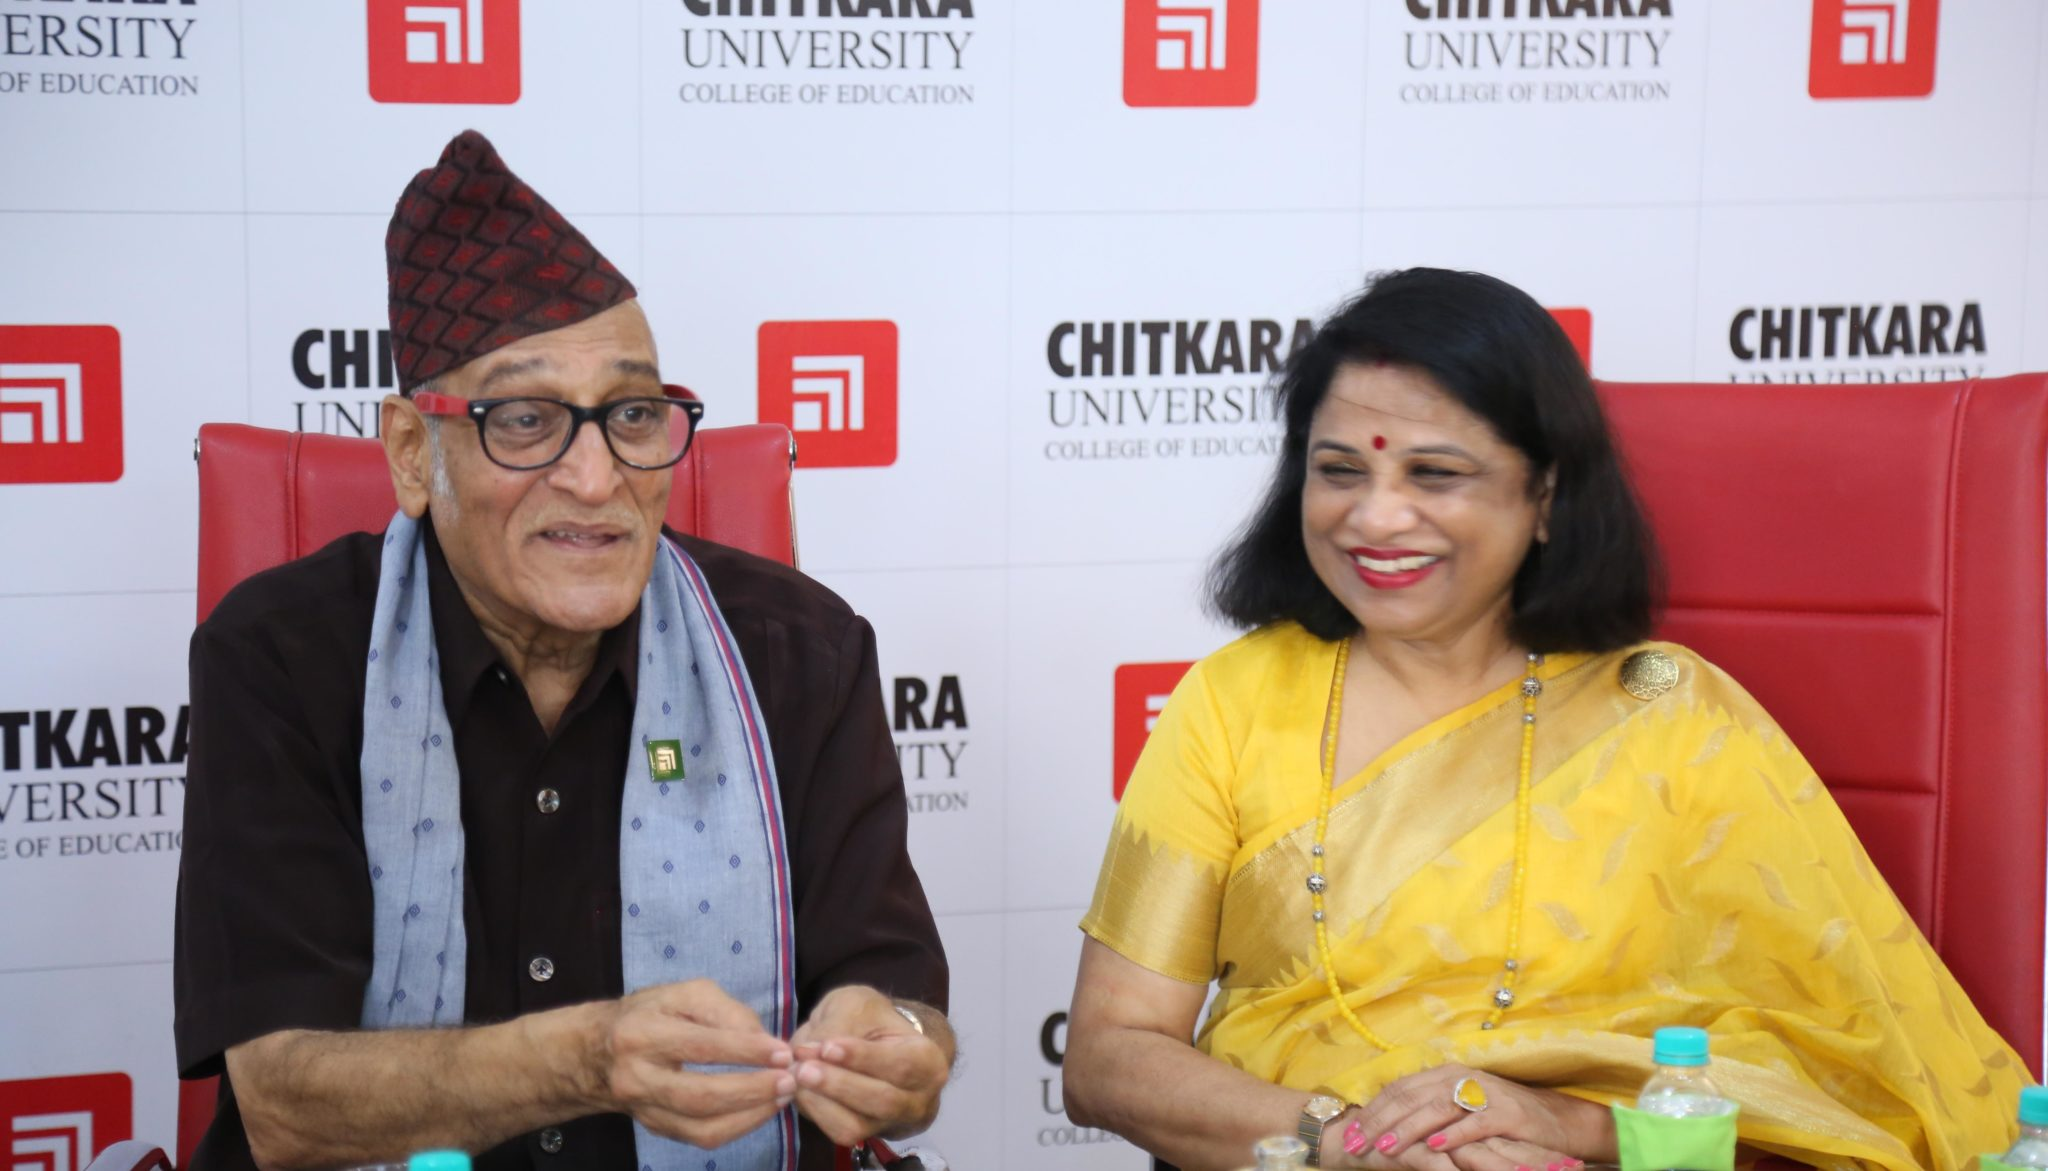 Mohan Agashes' visit to the GOOD DUNIYA @ Chandigarh for a talk at Chitkara!!